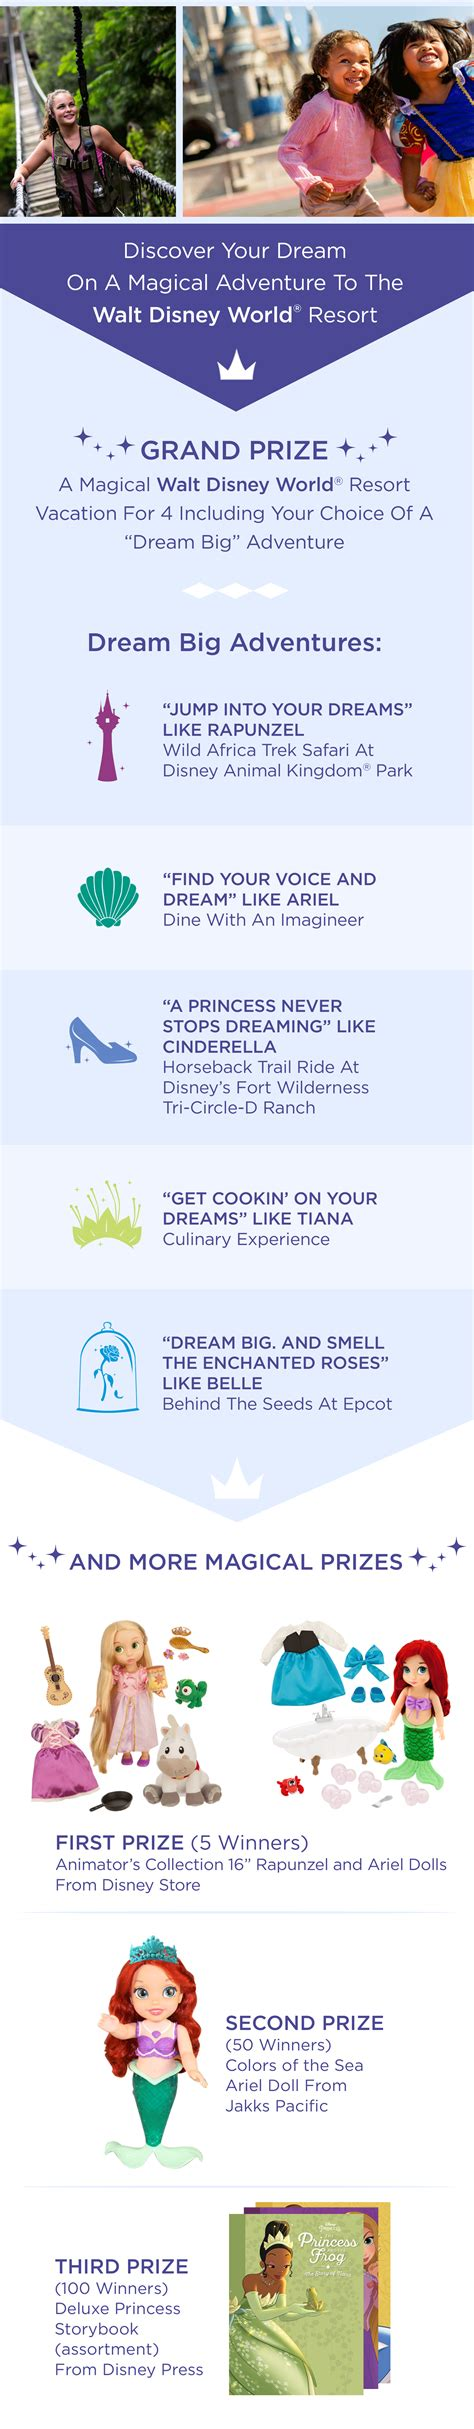 Disney Movie Rewards Sweepstakes - disney movie rewards dream big princess sweepstakes disney movie rewards